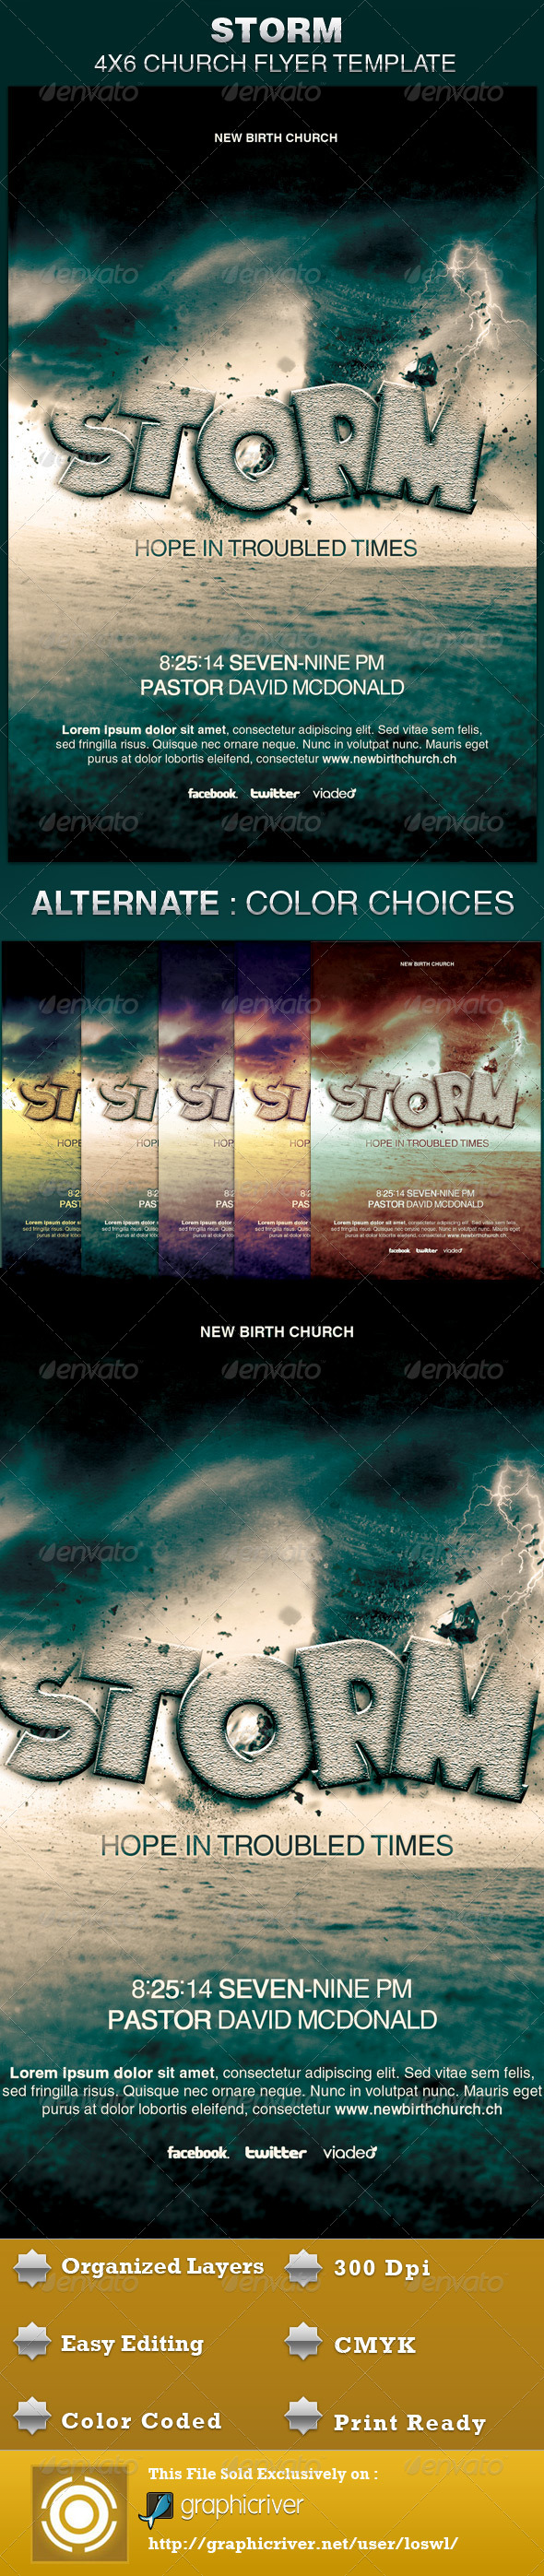 Storm Church Flyer Template - Church Flyers